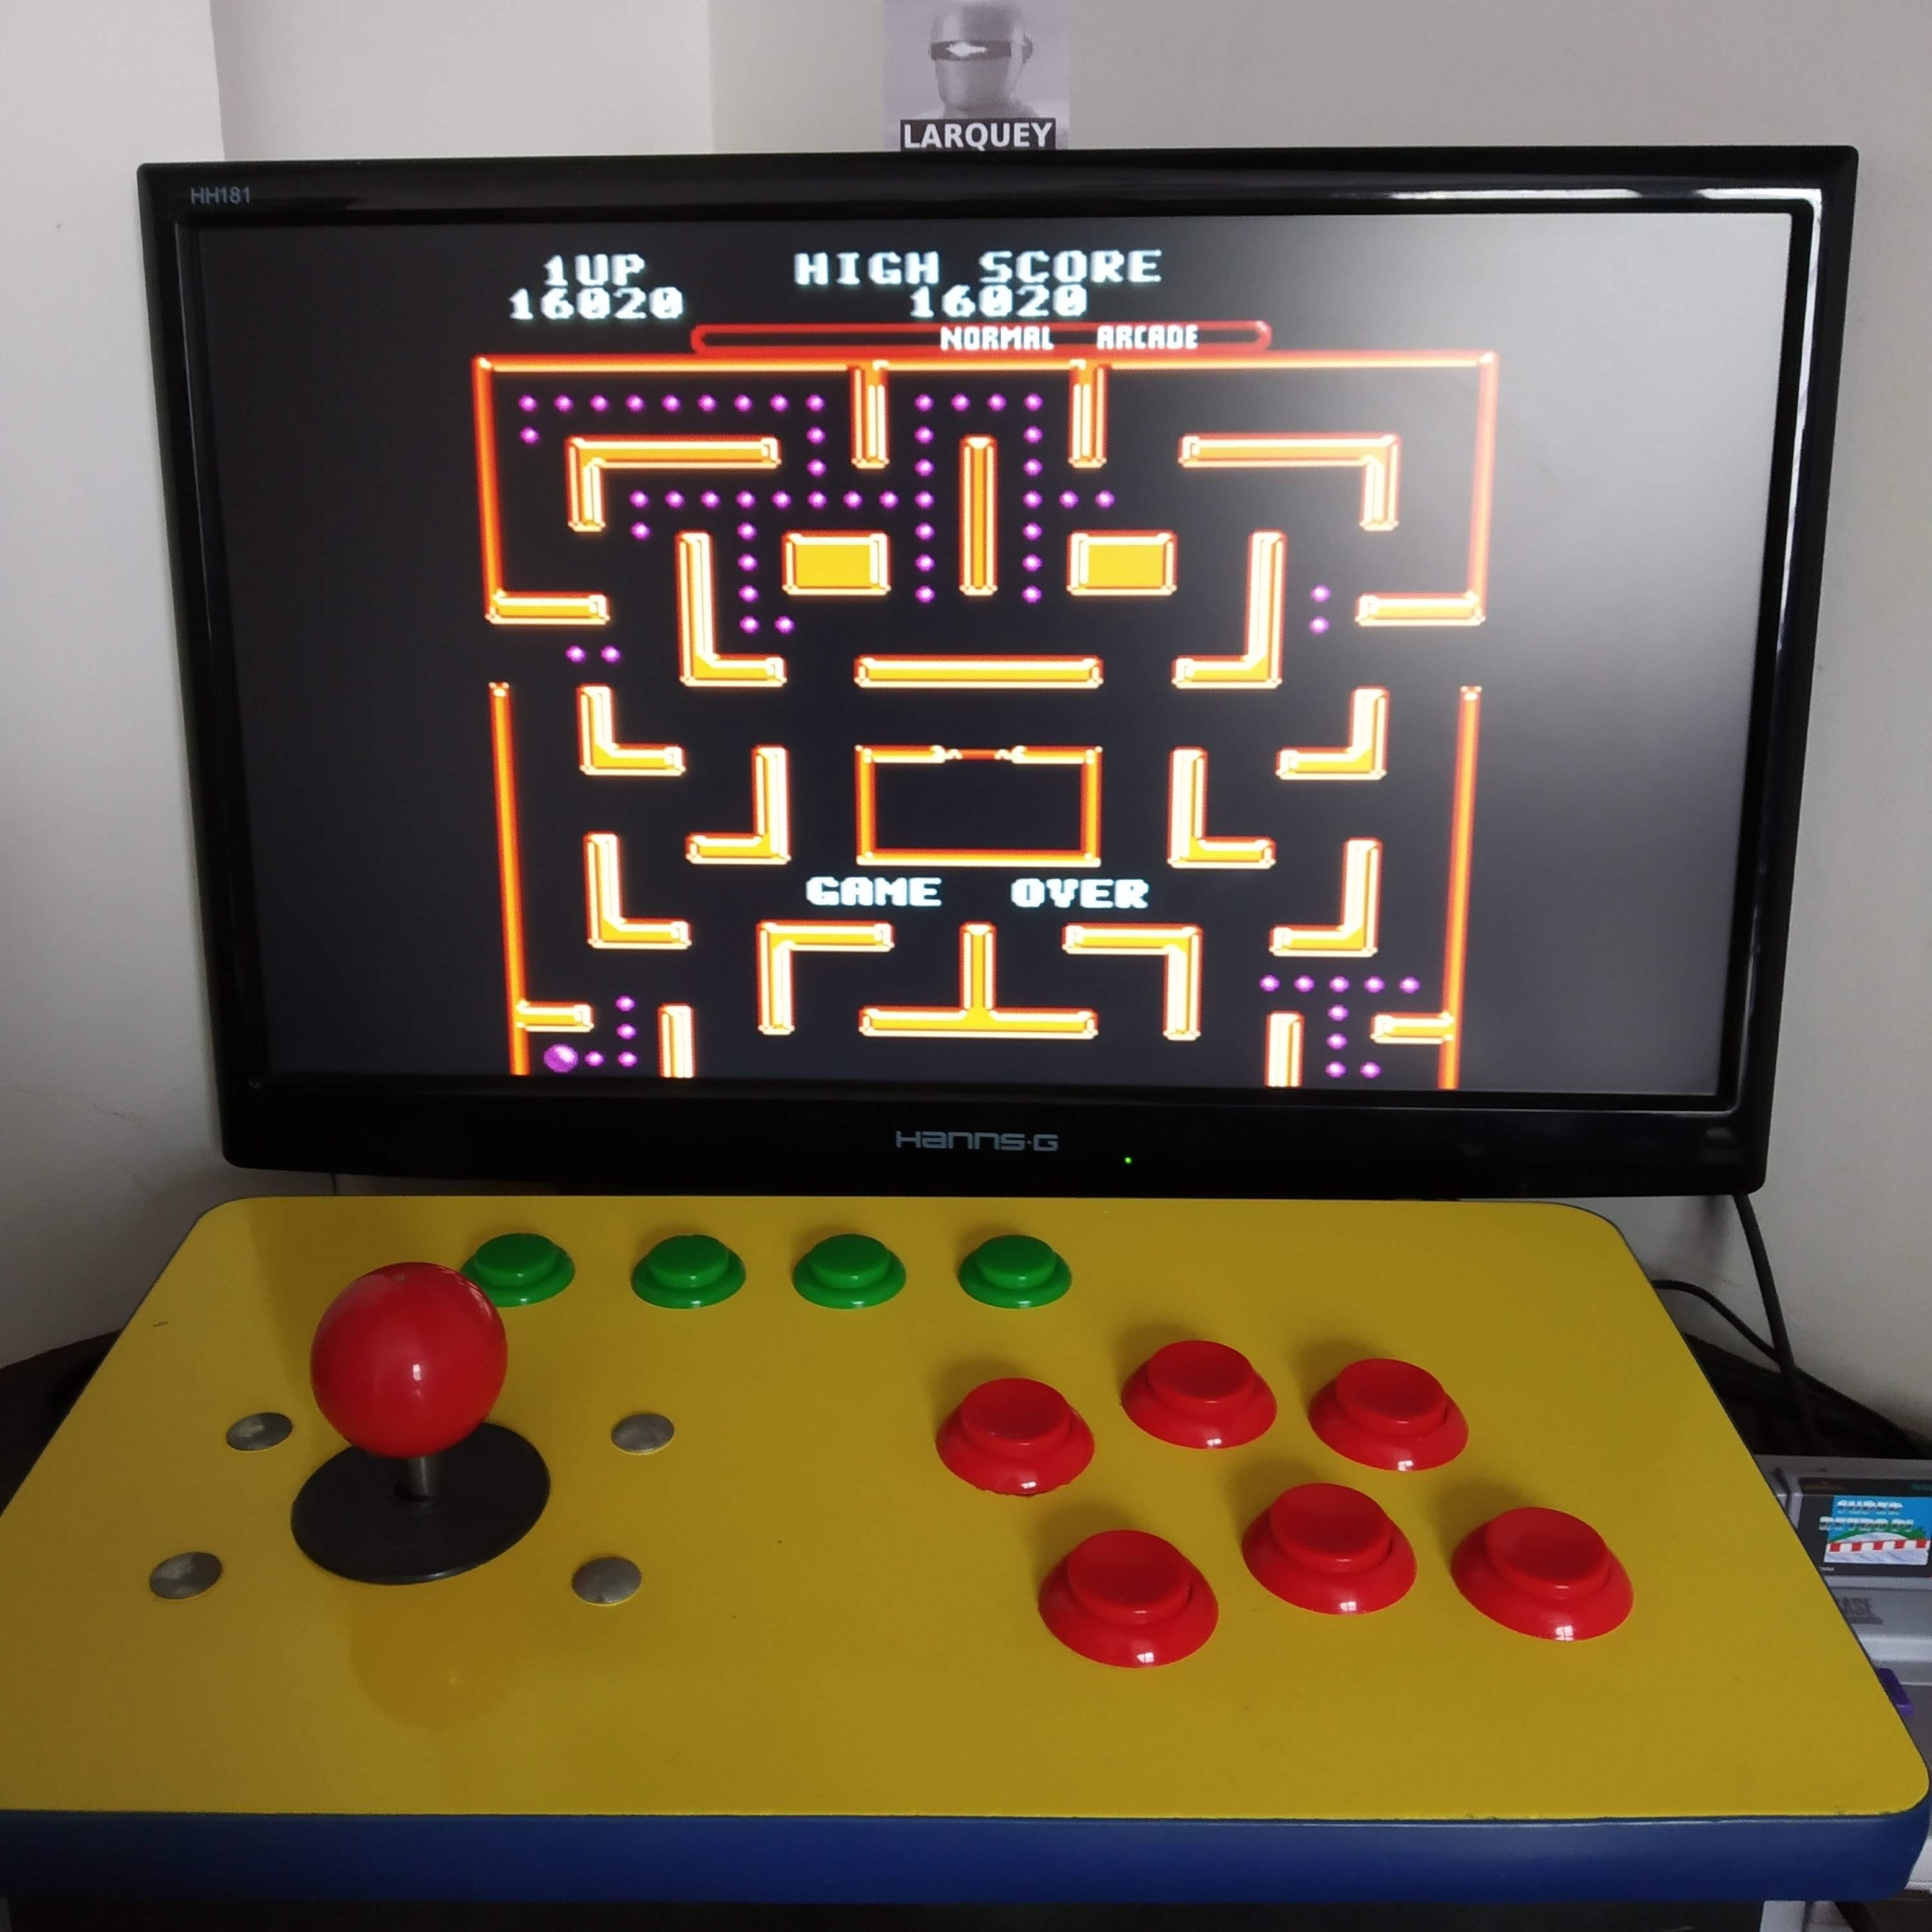 Larquey: Ms. Pac-Man [Off/Normal/Arcade/Level 5 Start] (SNES/Super Famicom Emulated) 16,020 points on 2020-08-16 09:46:35